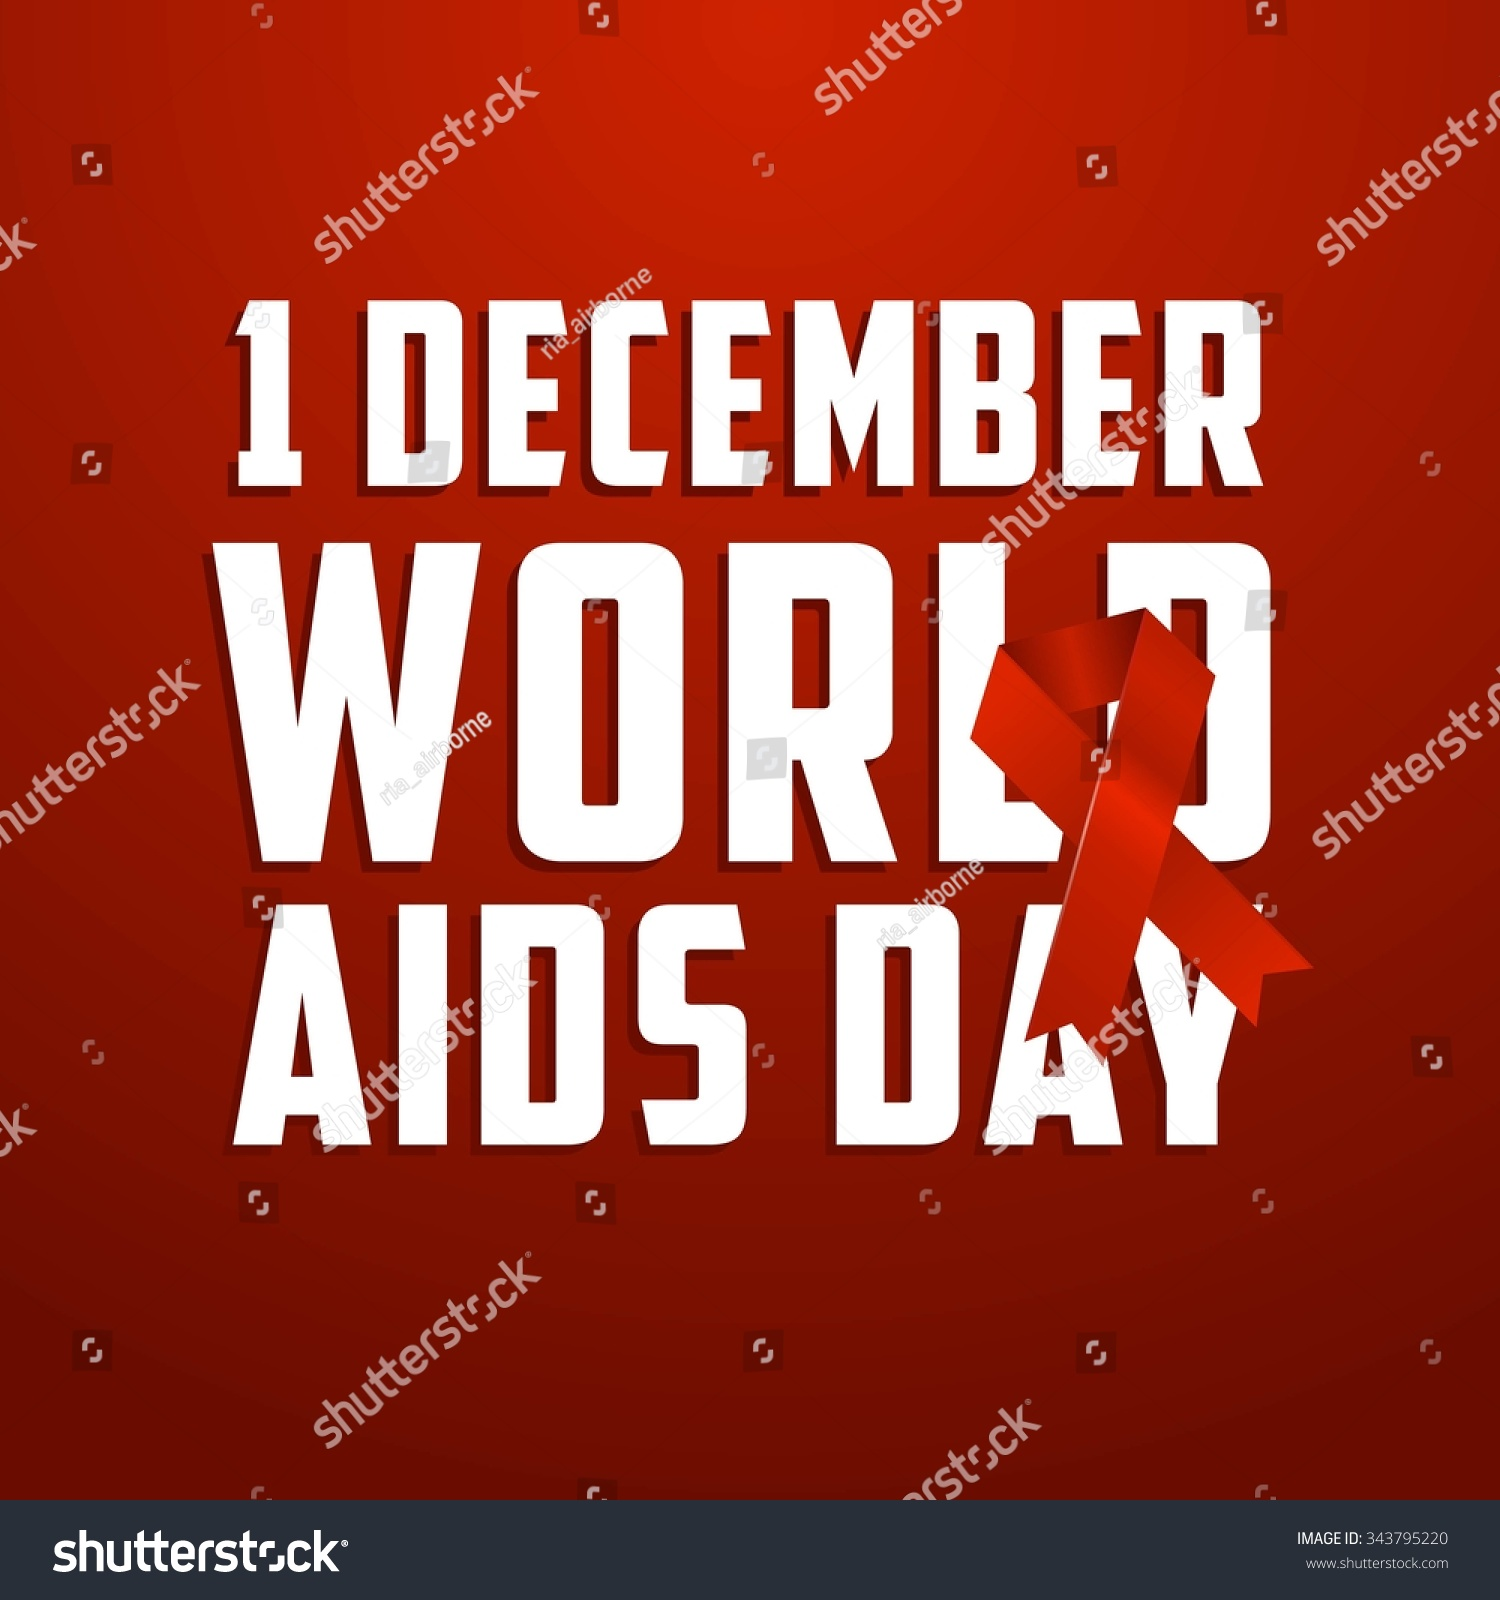 Inspirational Message Of The Day World Aids Day Poster Quotes Inspirational Stock Vector 343795220